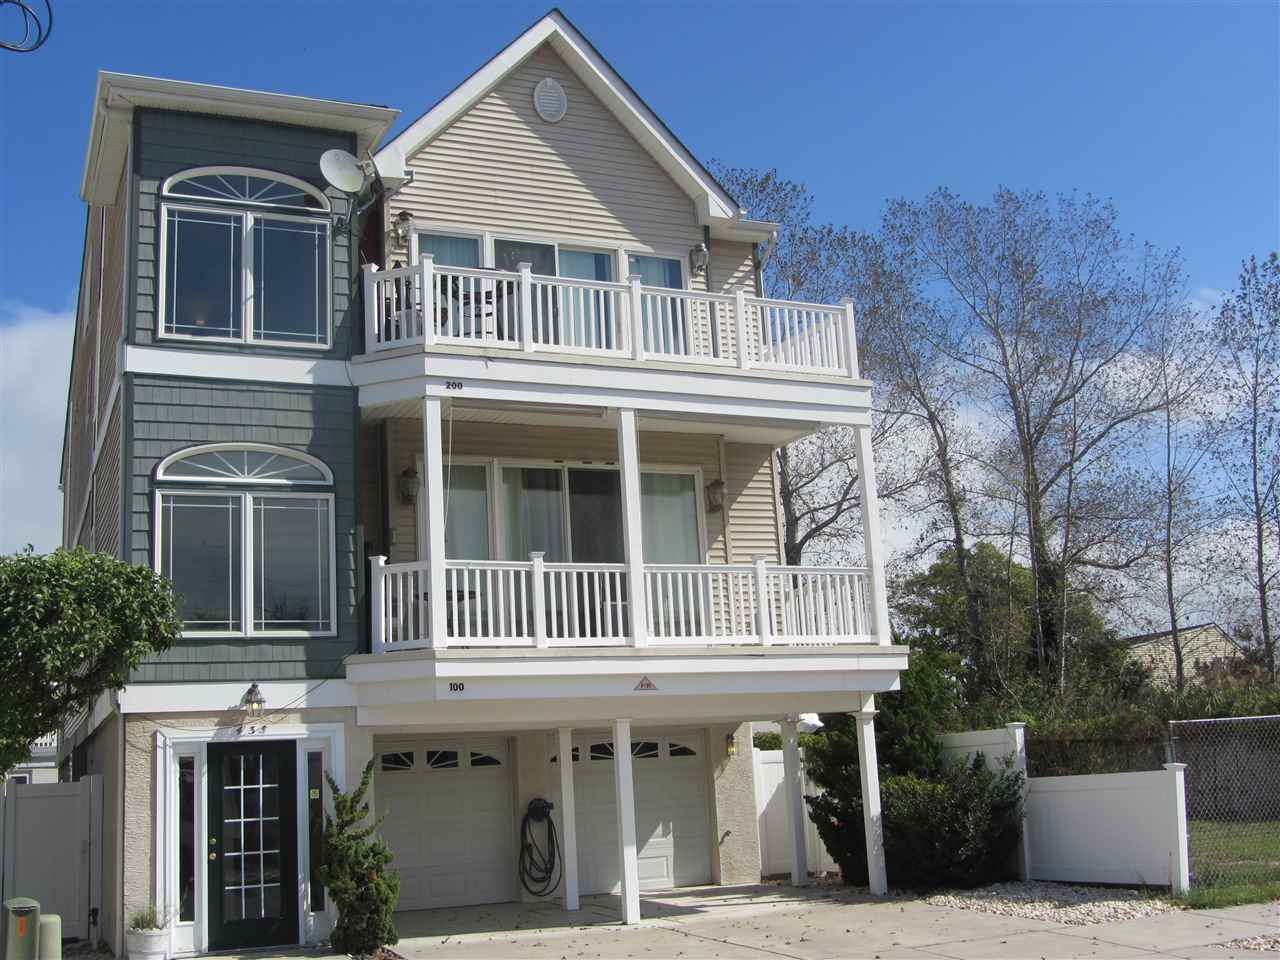 435  Lincoln,  Wildwood, NJ